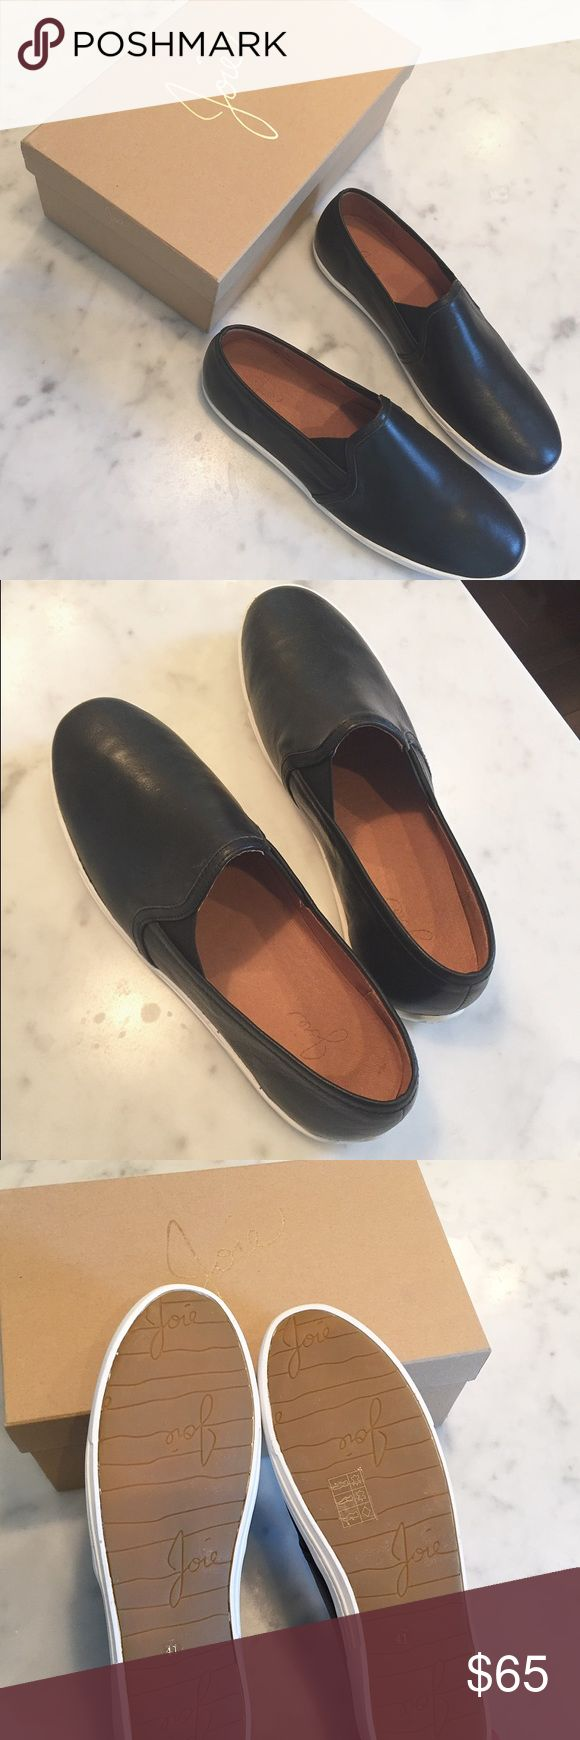 Joie Kidmore Sneakers Joie Kidmore Sneakers. Black leather. Size 41/11.  Brand new, in box. The street wear staple gets a chic update in python stamped leather. An off duty classic with luxe appeal, our Kidmore slip on sneaker is a wardrobe must! So comfy! Joie Shoes Sneakers